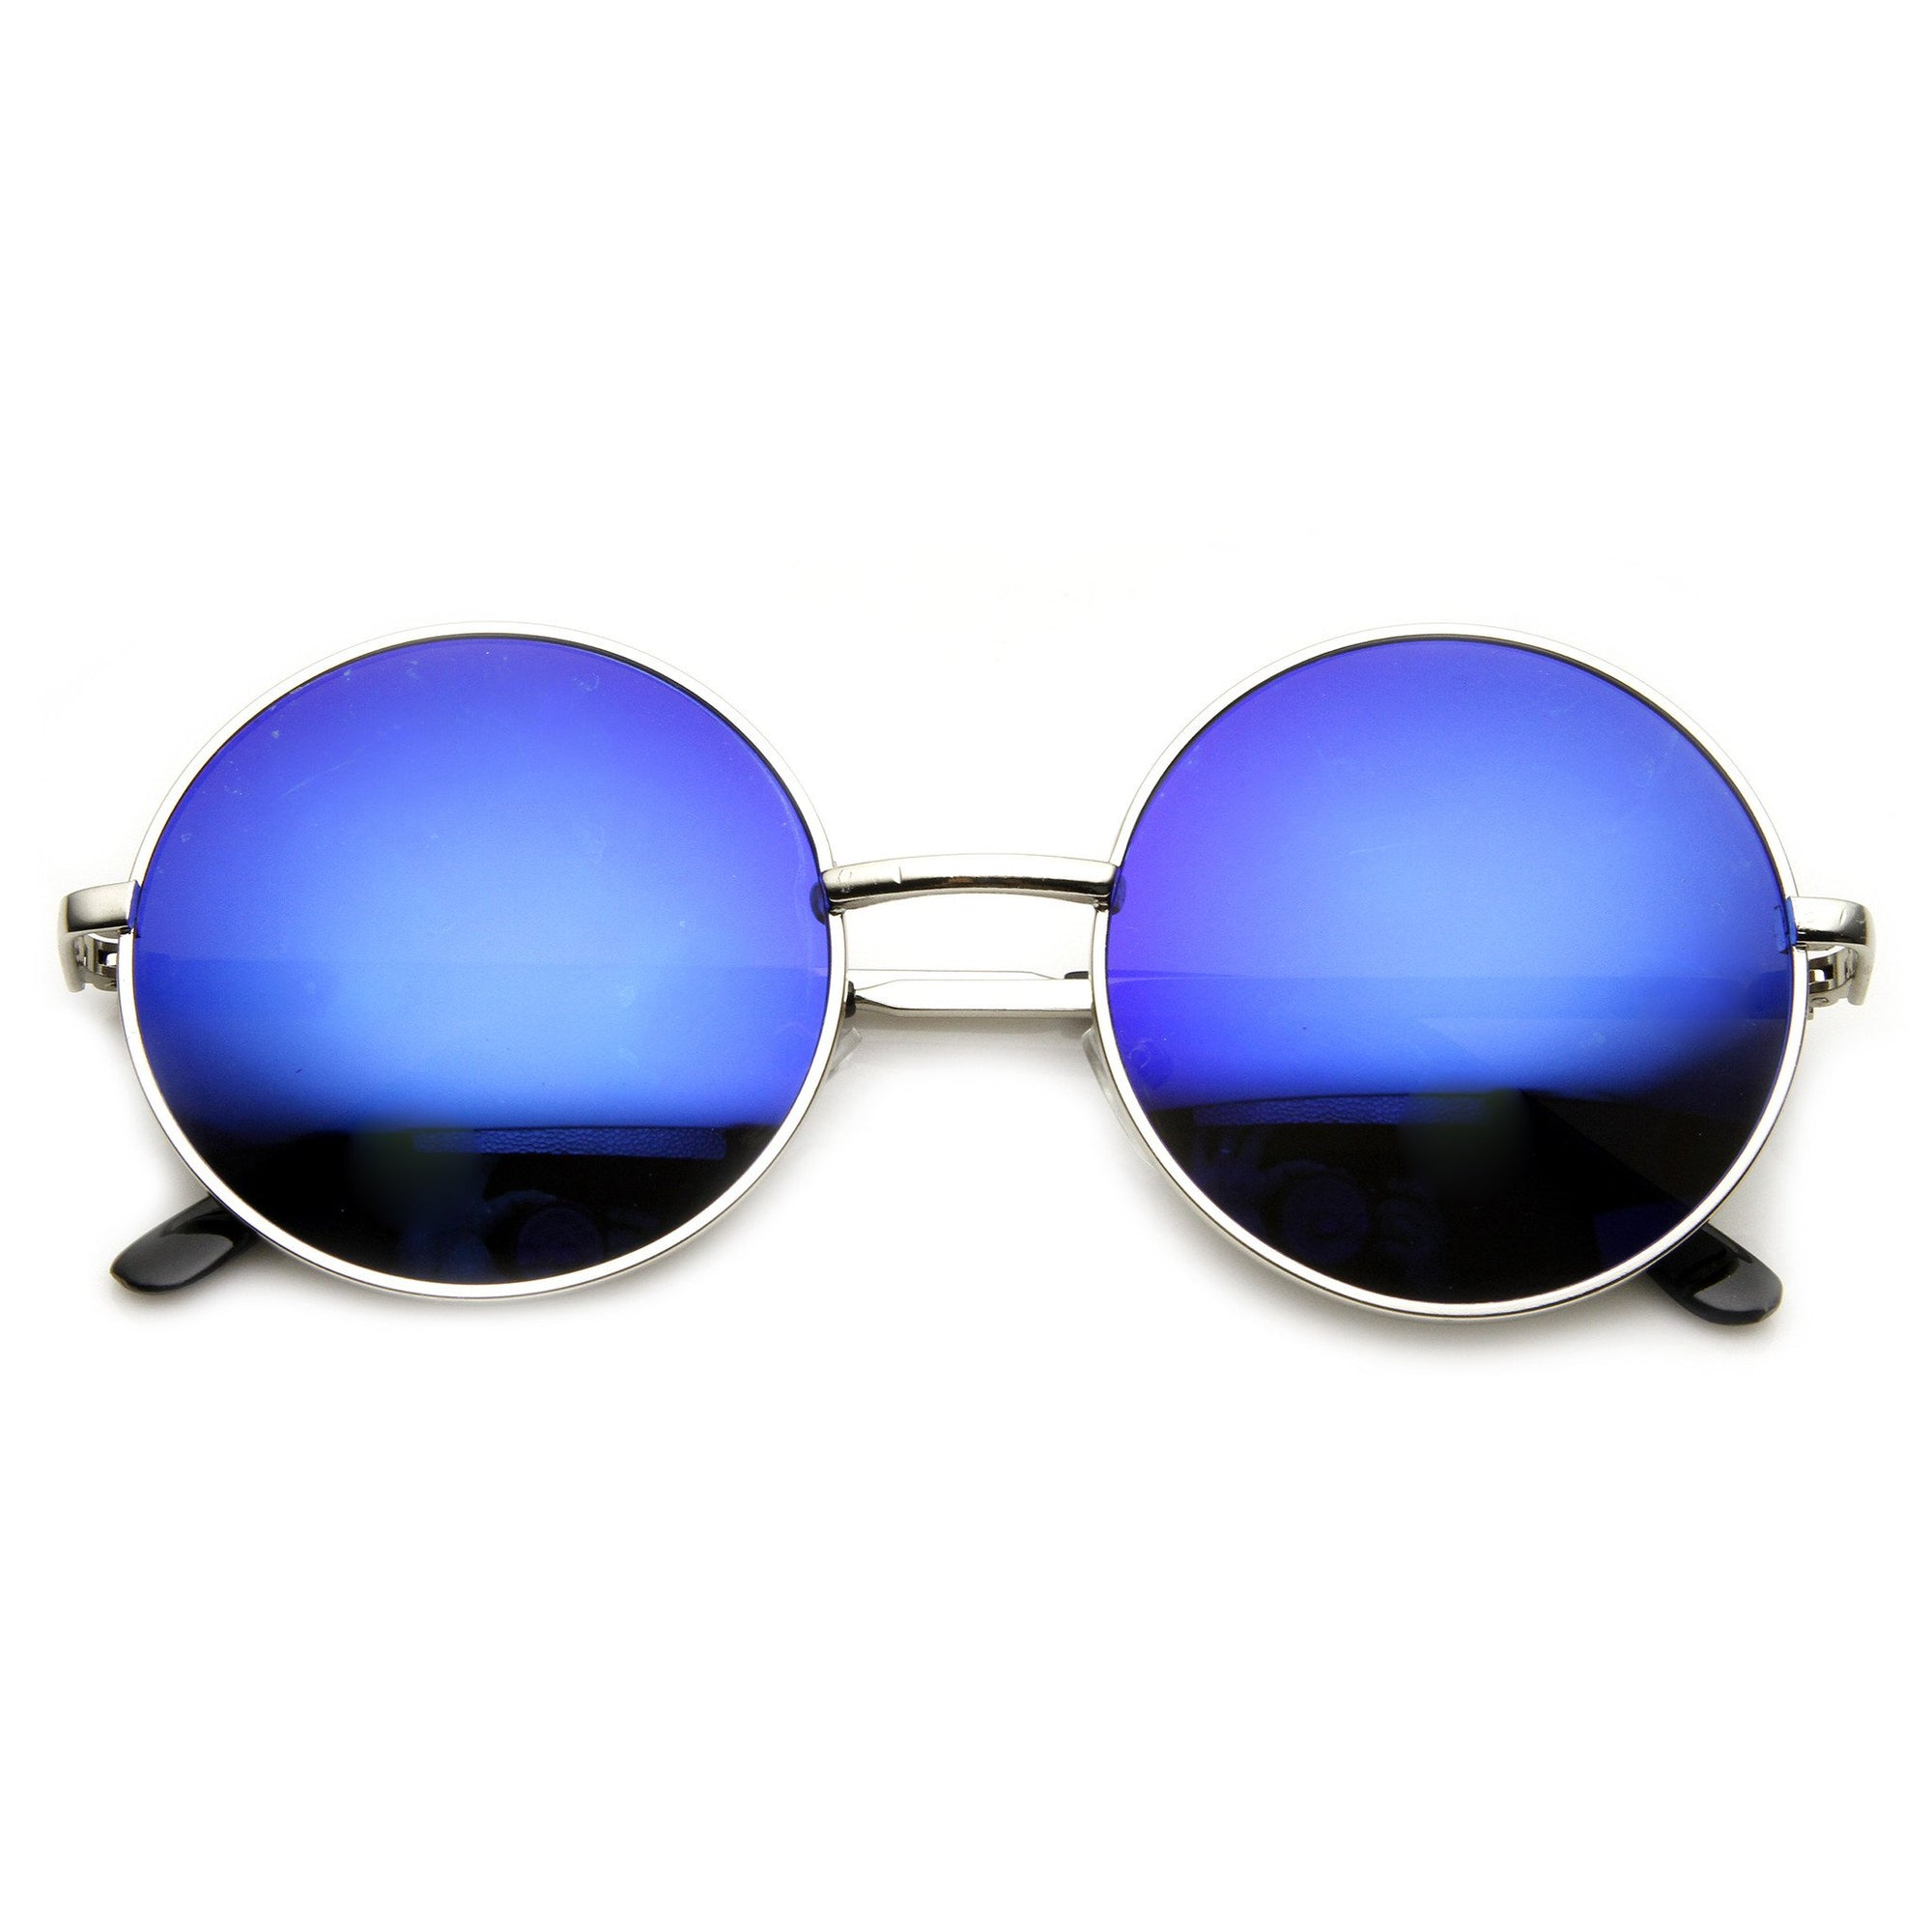 c25f1a756b9 Retro Flash Color Mirror Lens Round Metal Sunglasses 9203